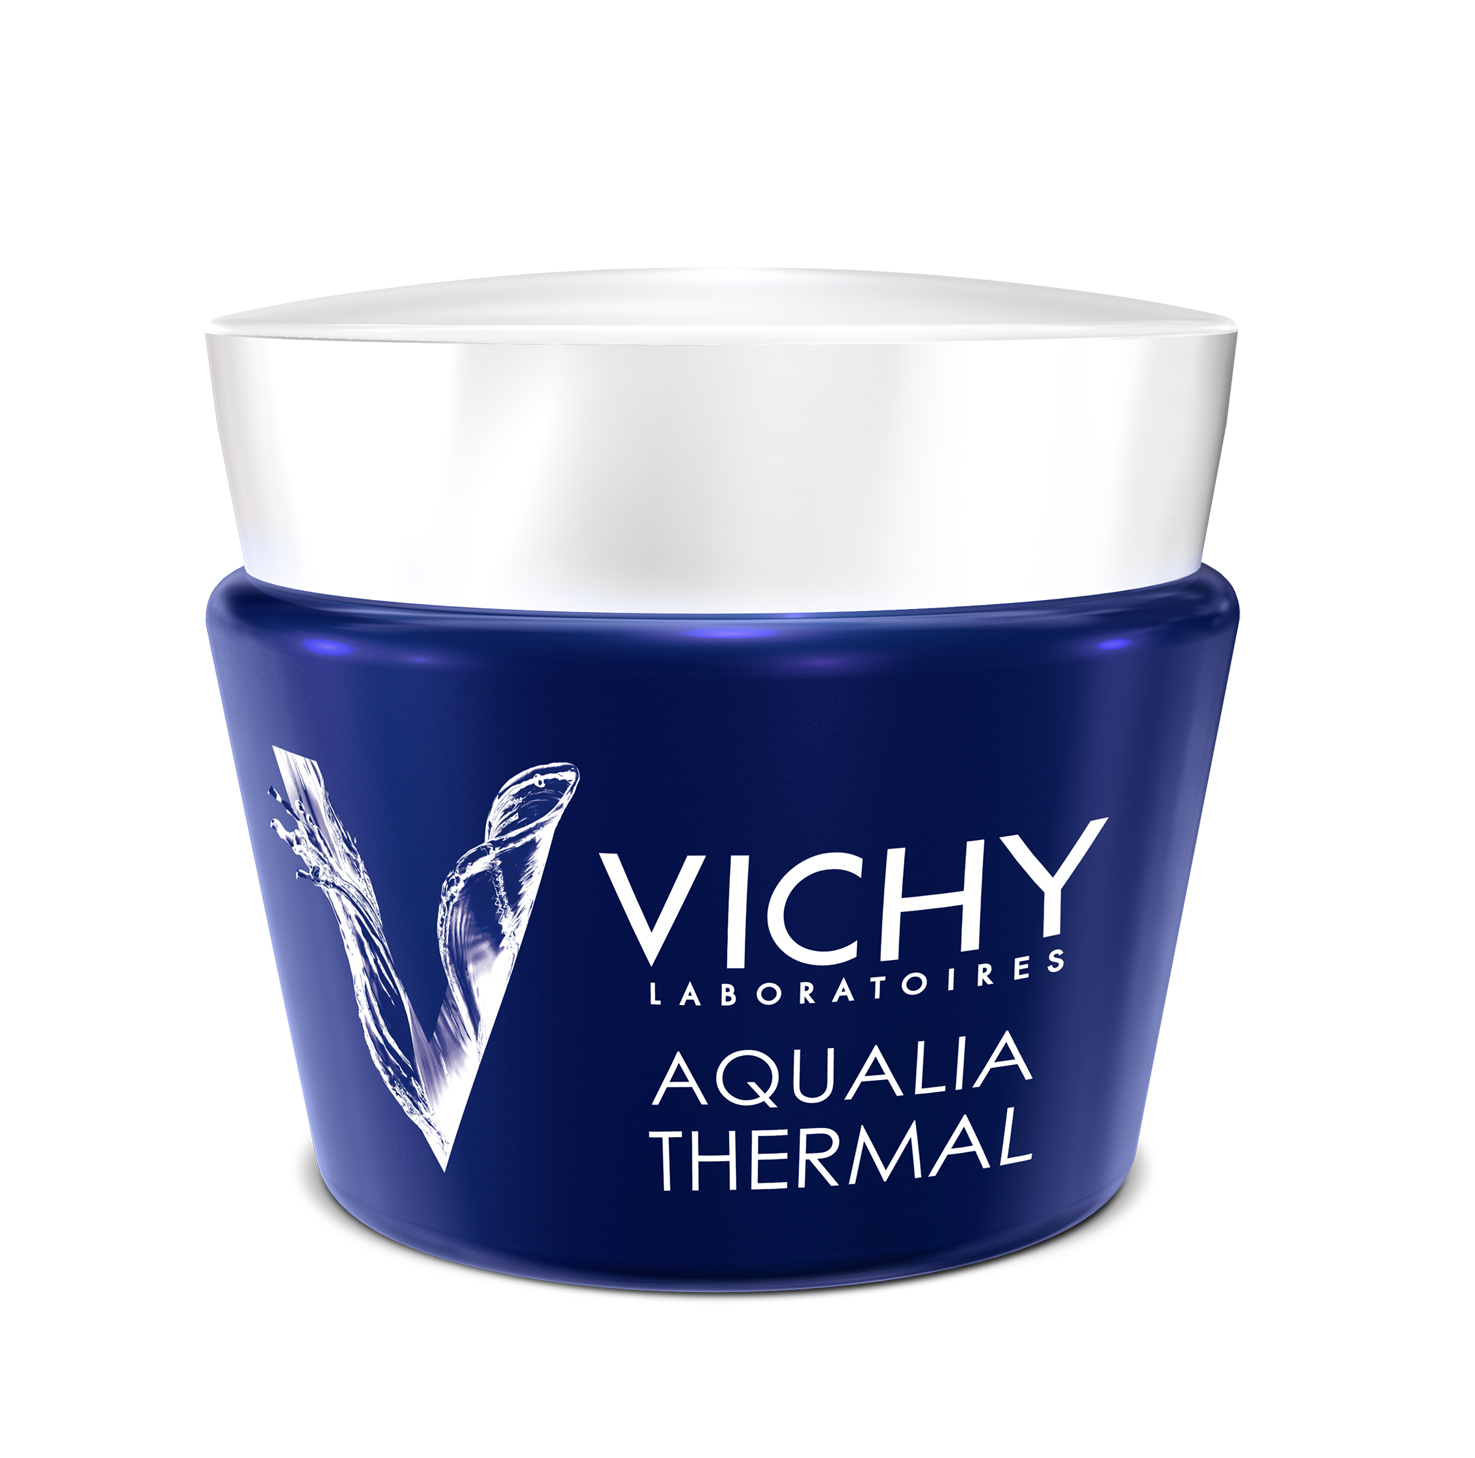 VICHY AQUALIA THERMAL SPA éjszakai.jpg